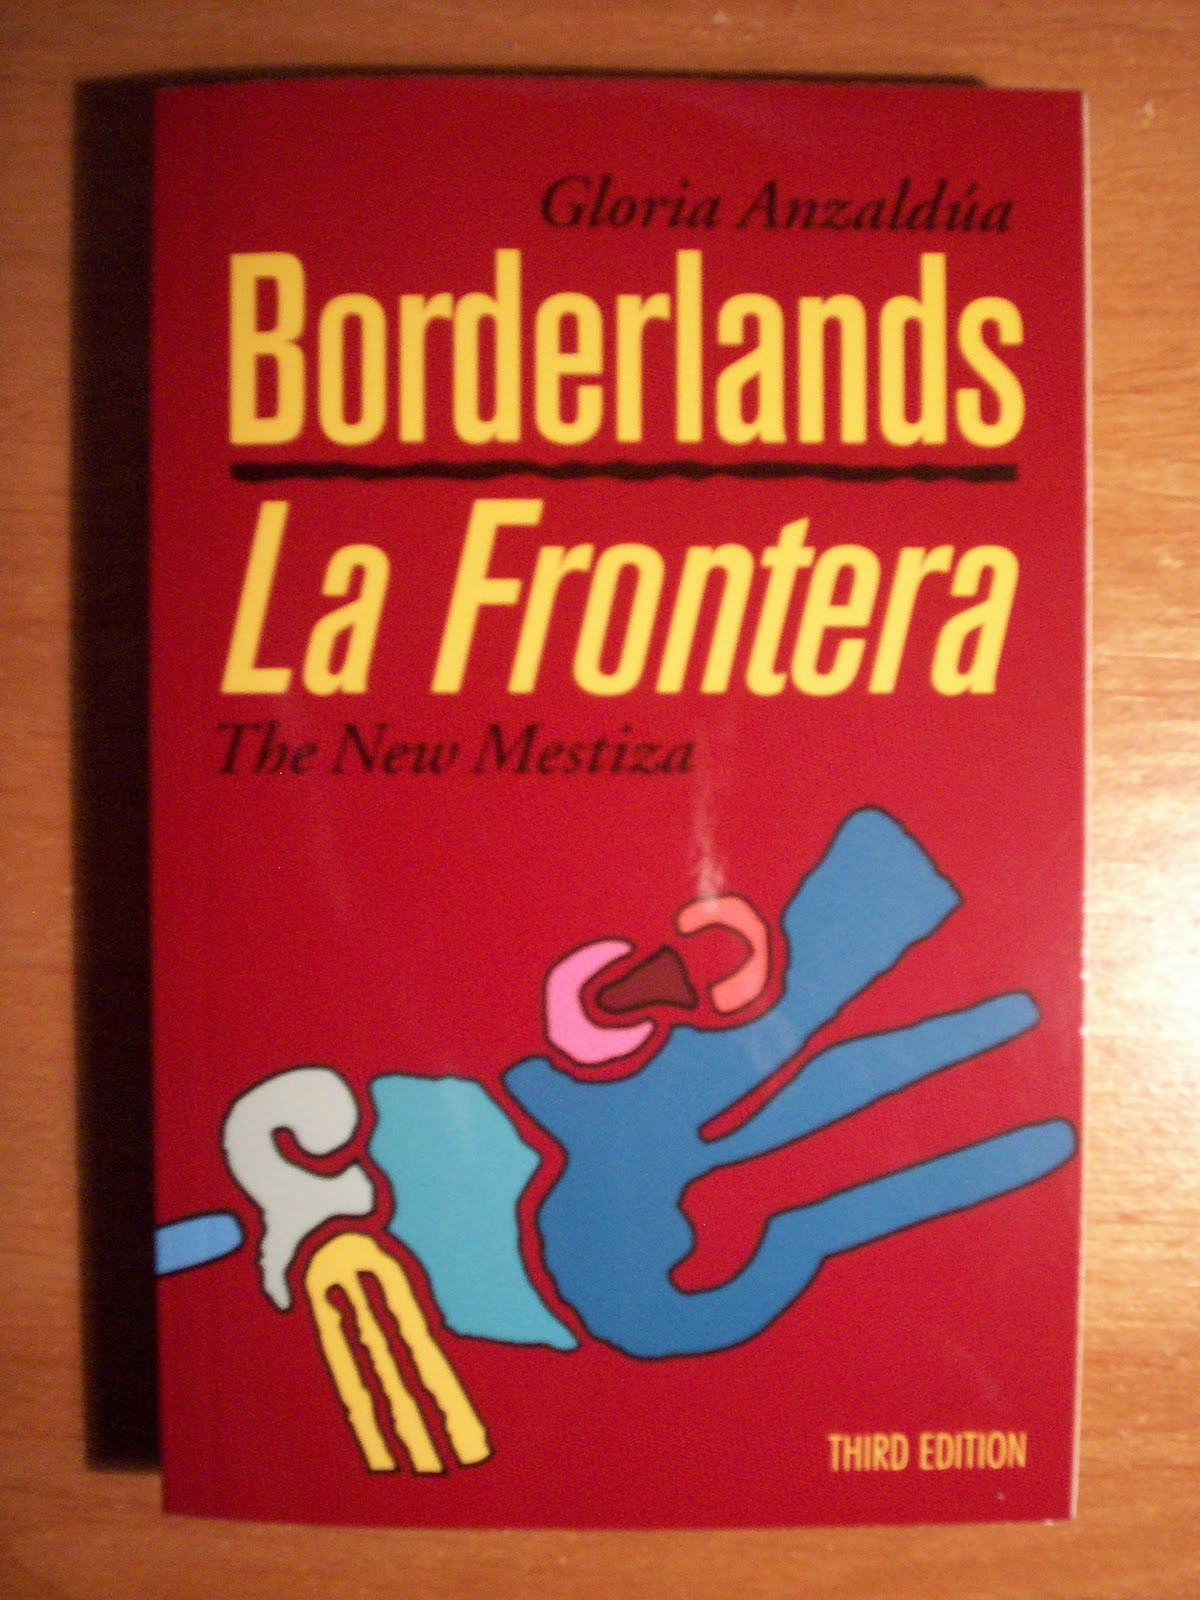 borderlands la frontera Essays - largest database of quality sample essays and research papers on borderlands la frontera.